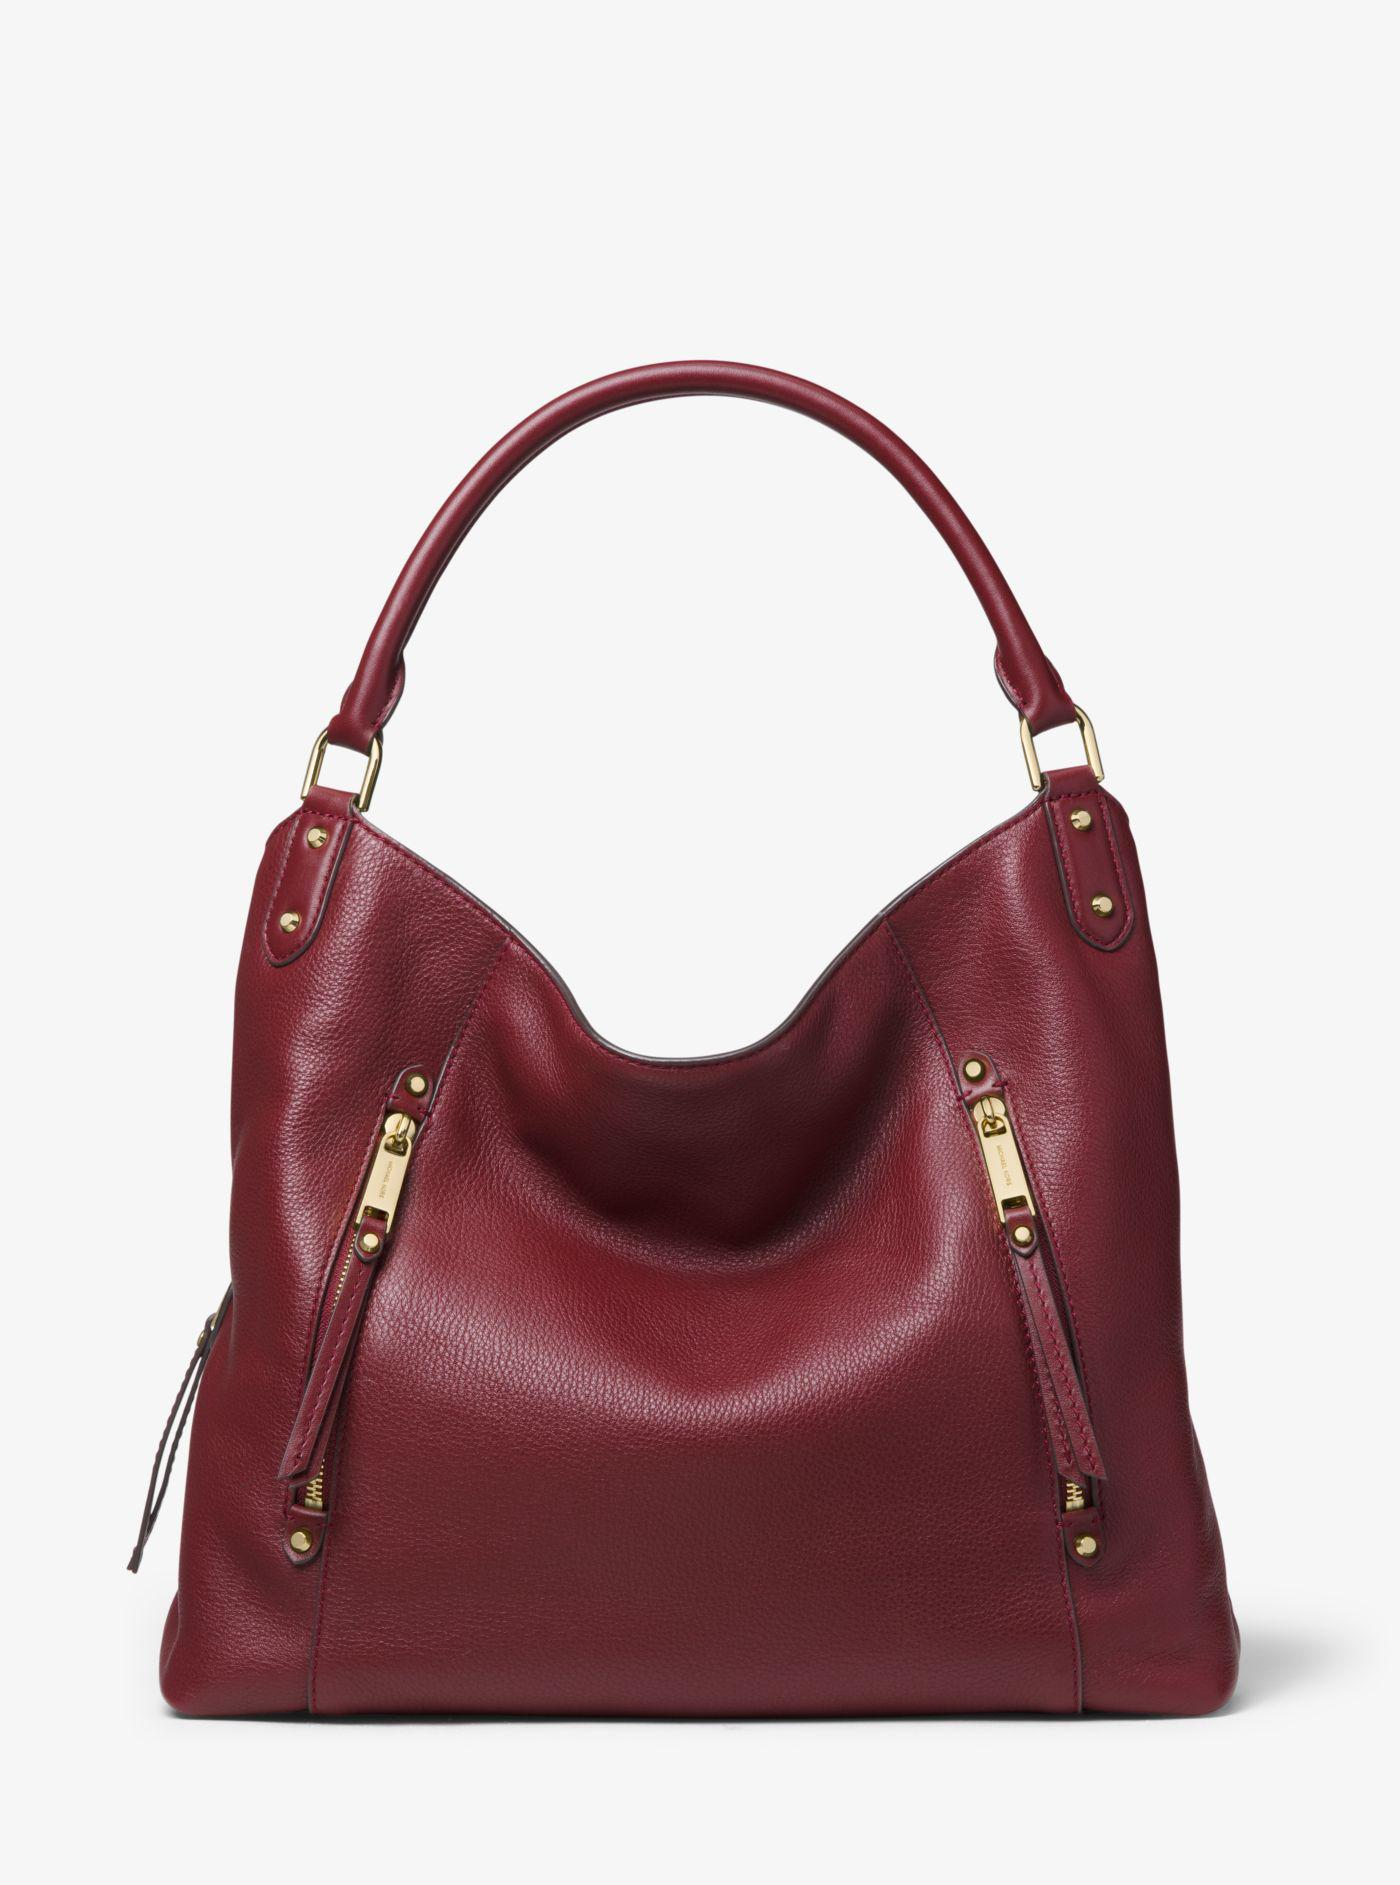 5d53dbbe7d9a Michael Kors Evie Large Pebbled Leather Shoulder Bag in Red - Lyst